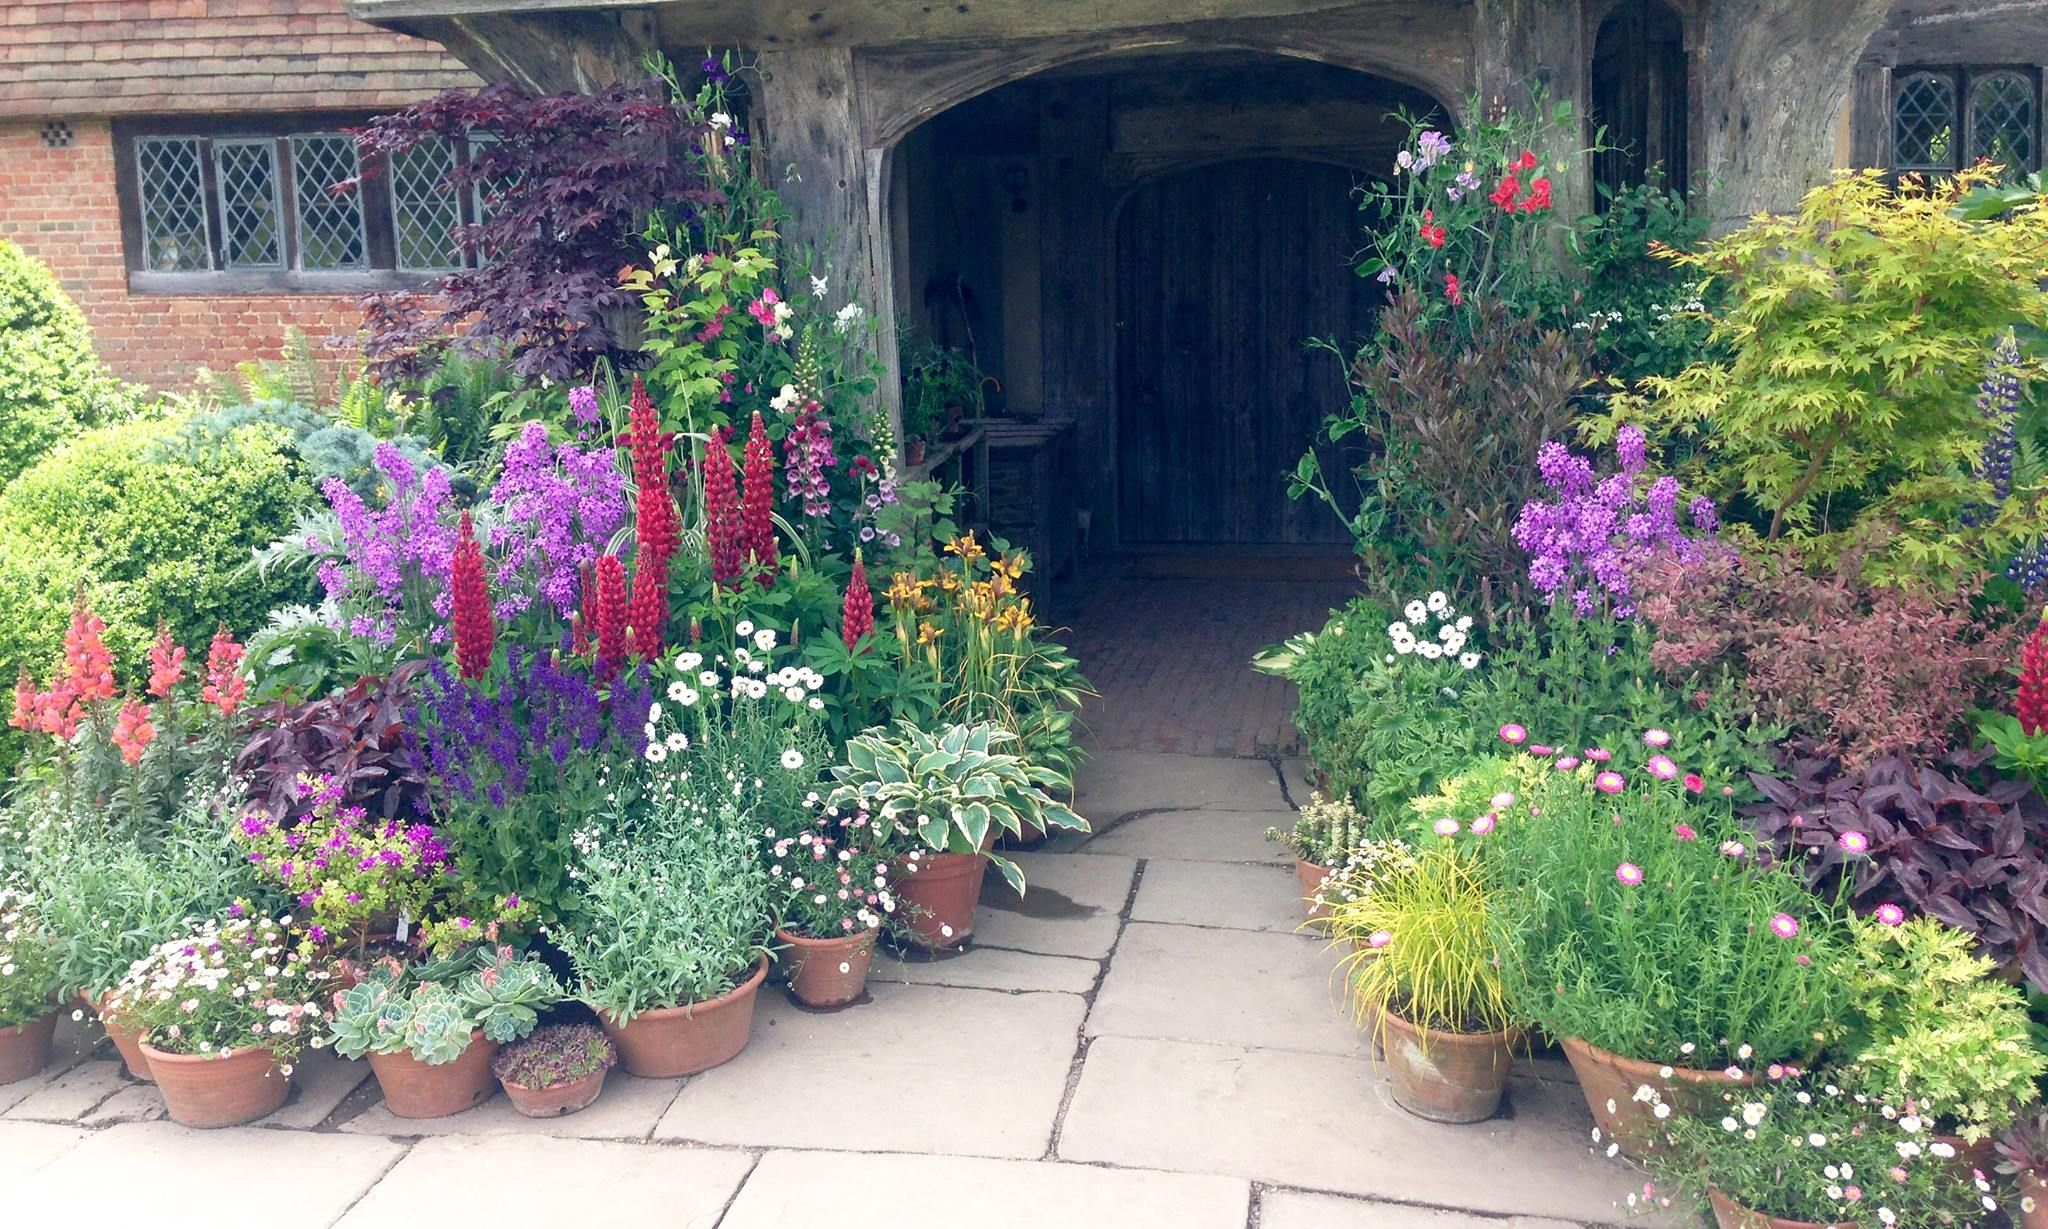 A welcoming display of container plants at